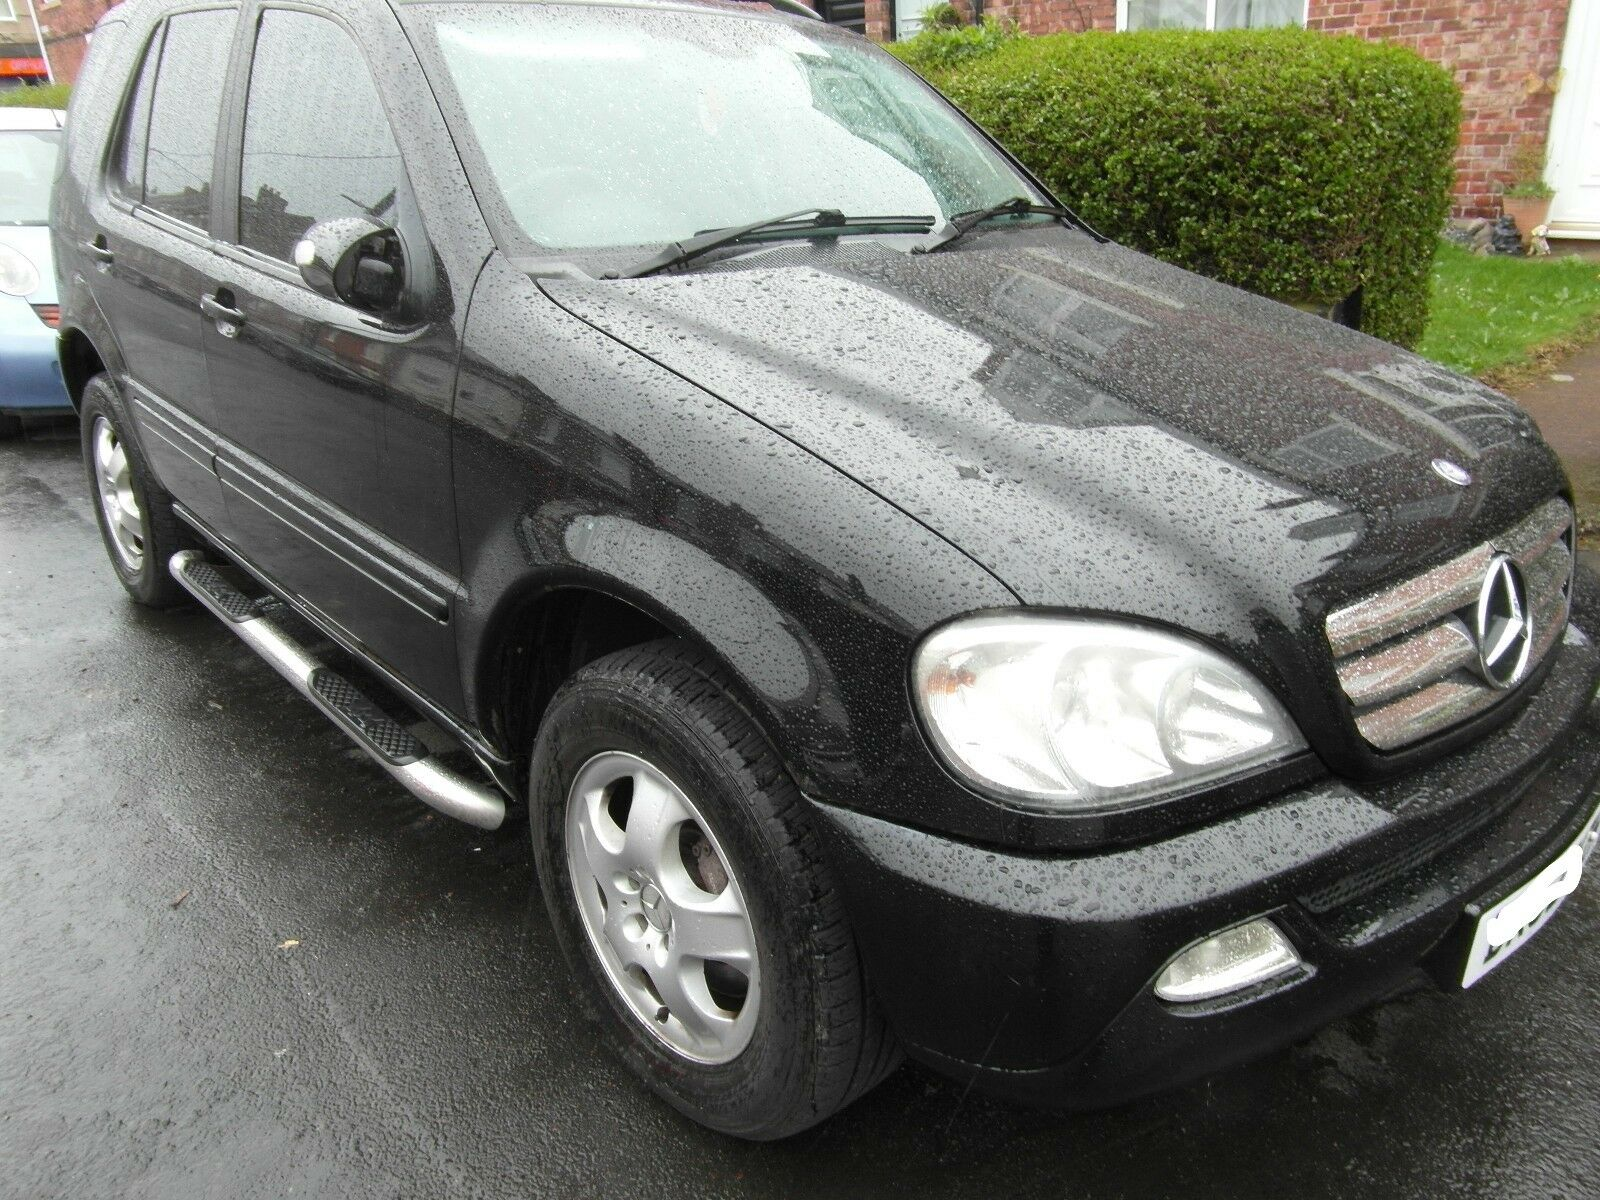 Mercedes ML 270 CDI 6 speed Manual 1 of 7 See More